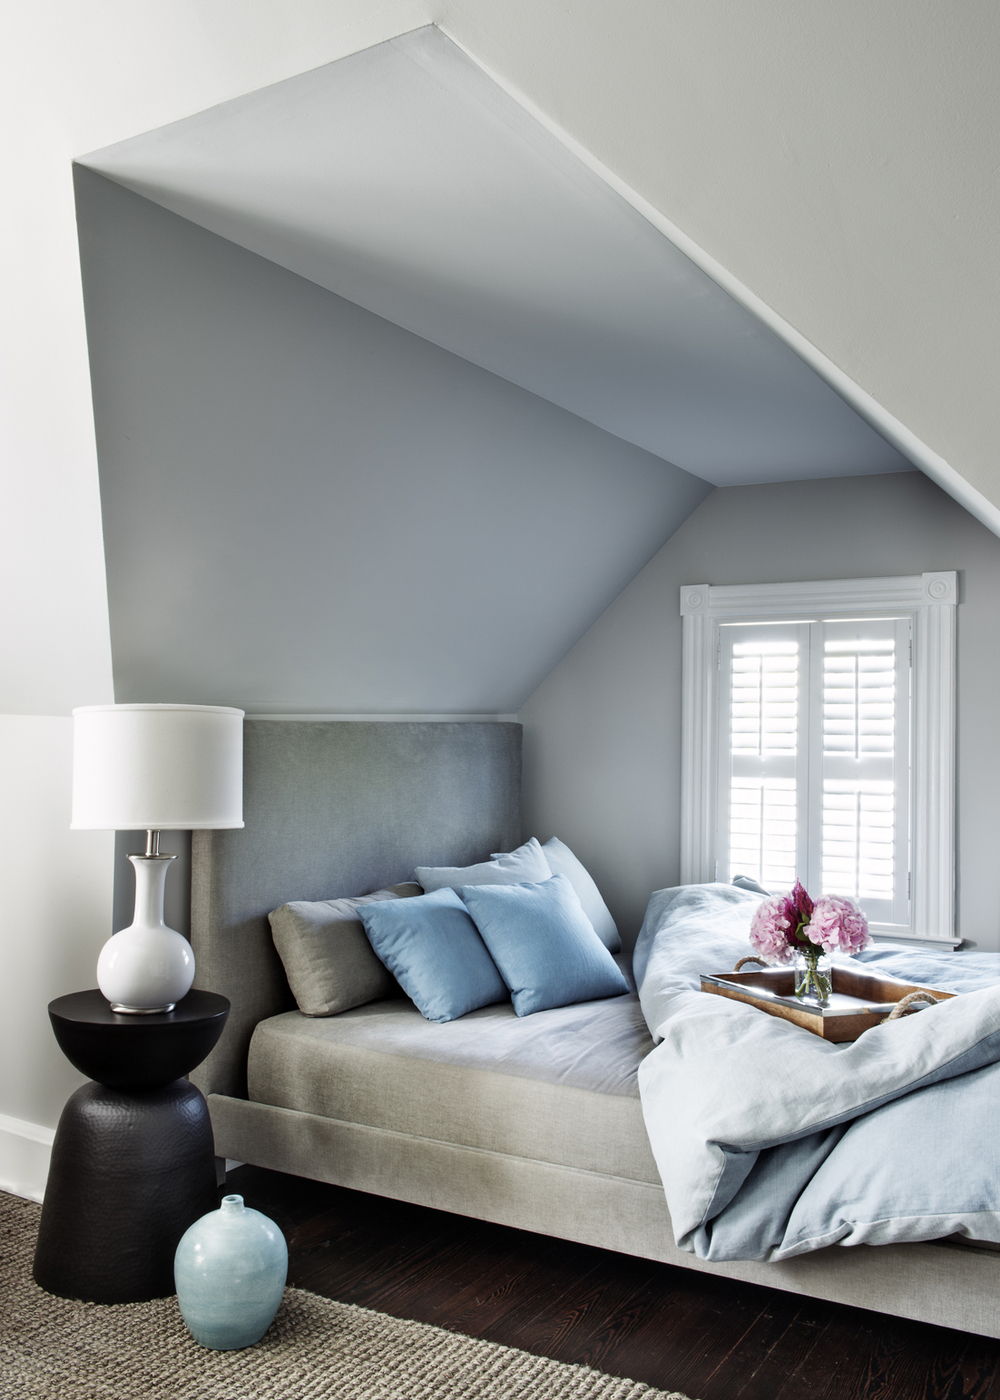 Copy of Victorian Rumson Beach Home - GUEST ROOM